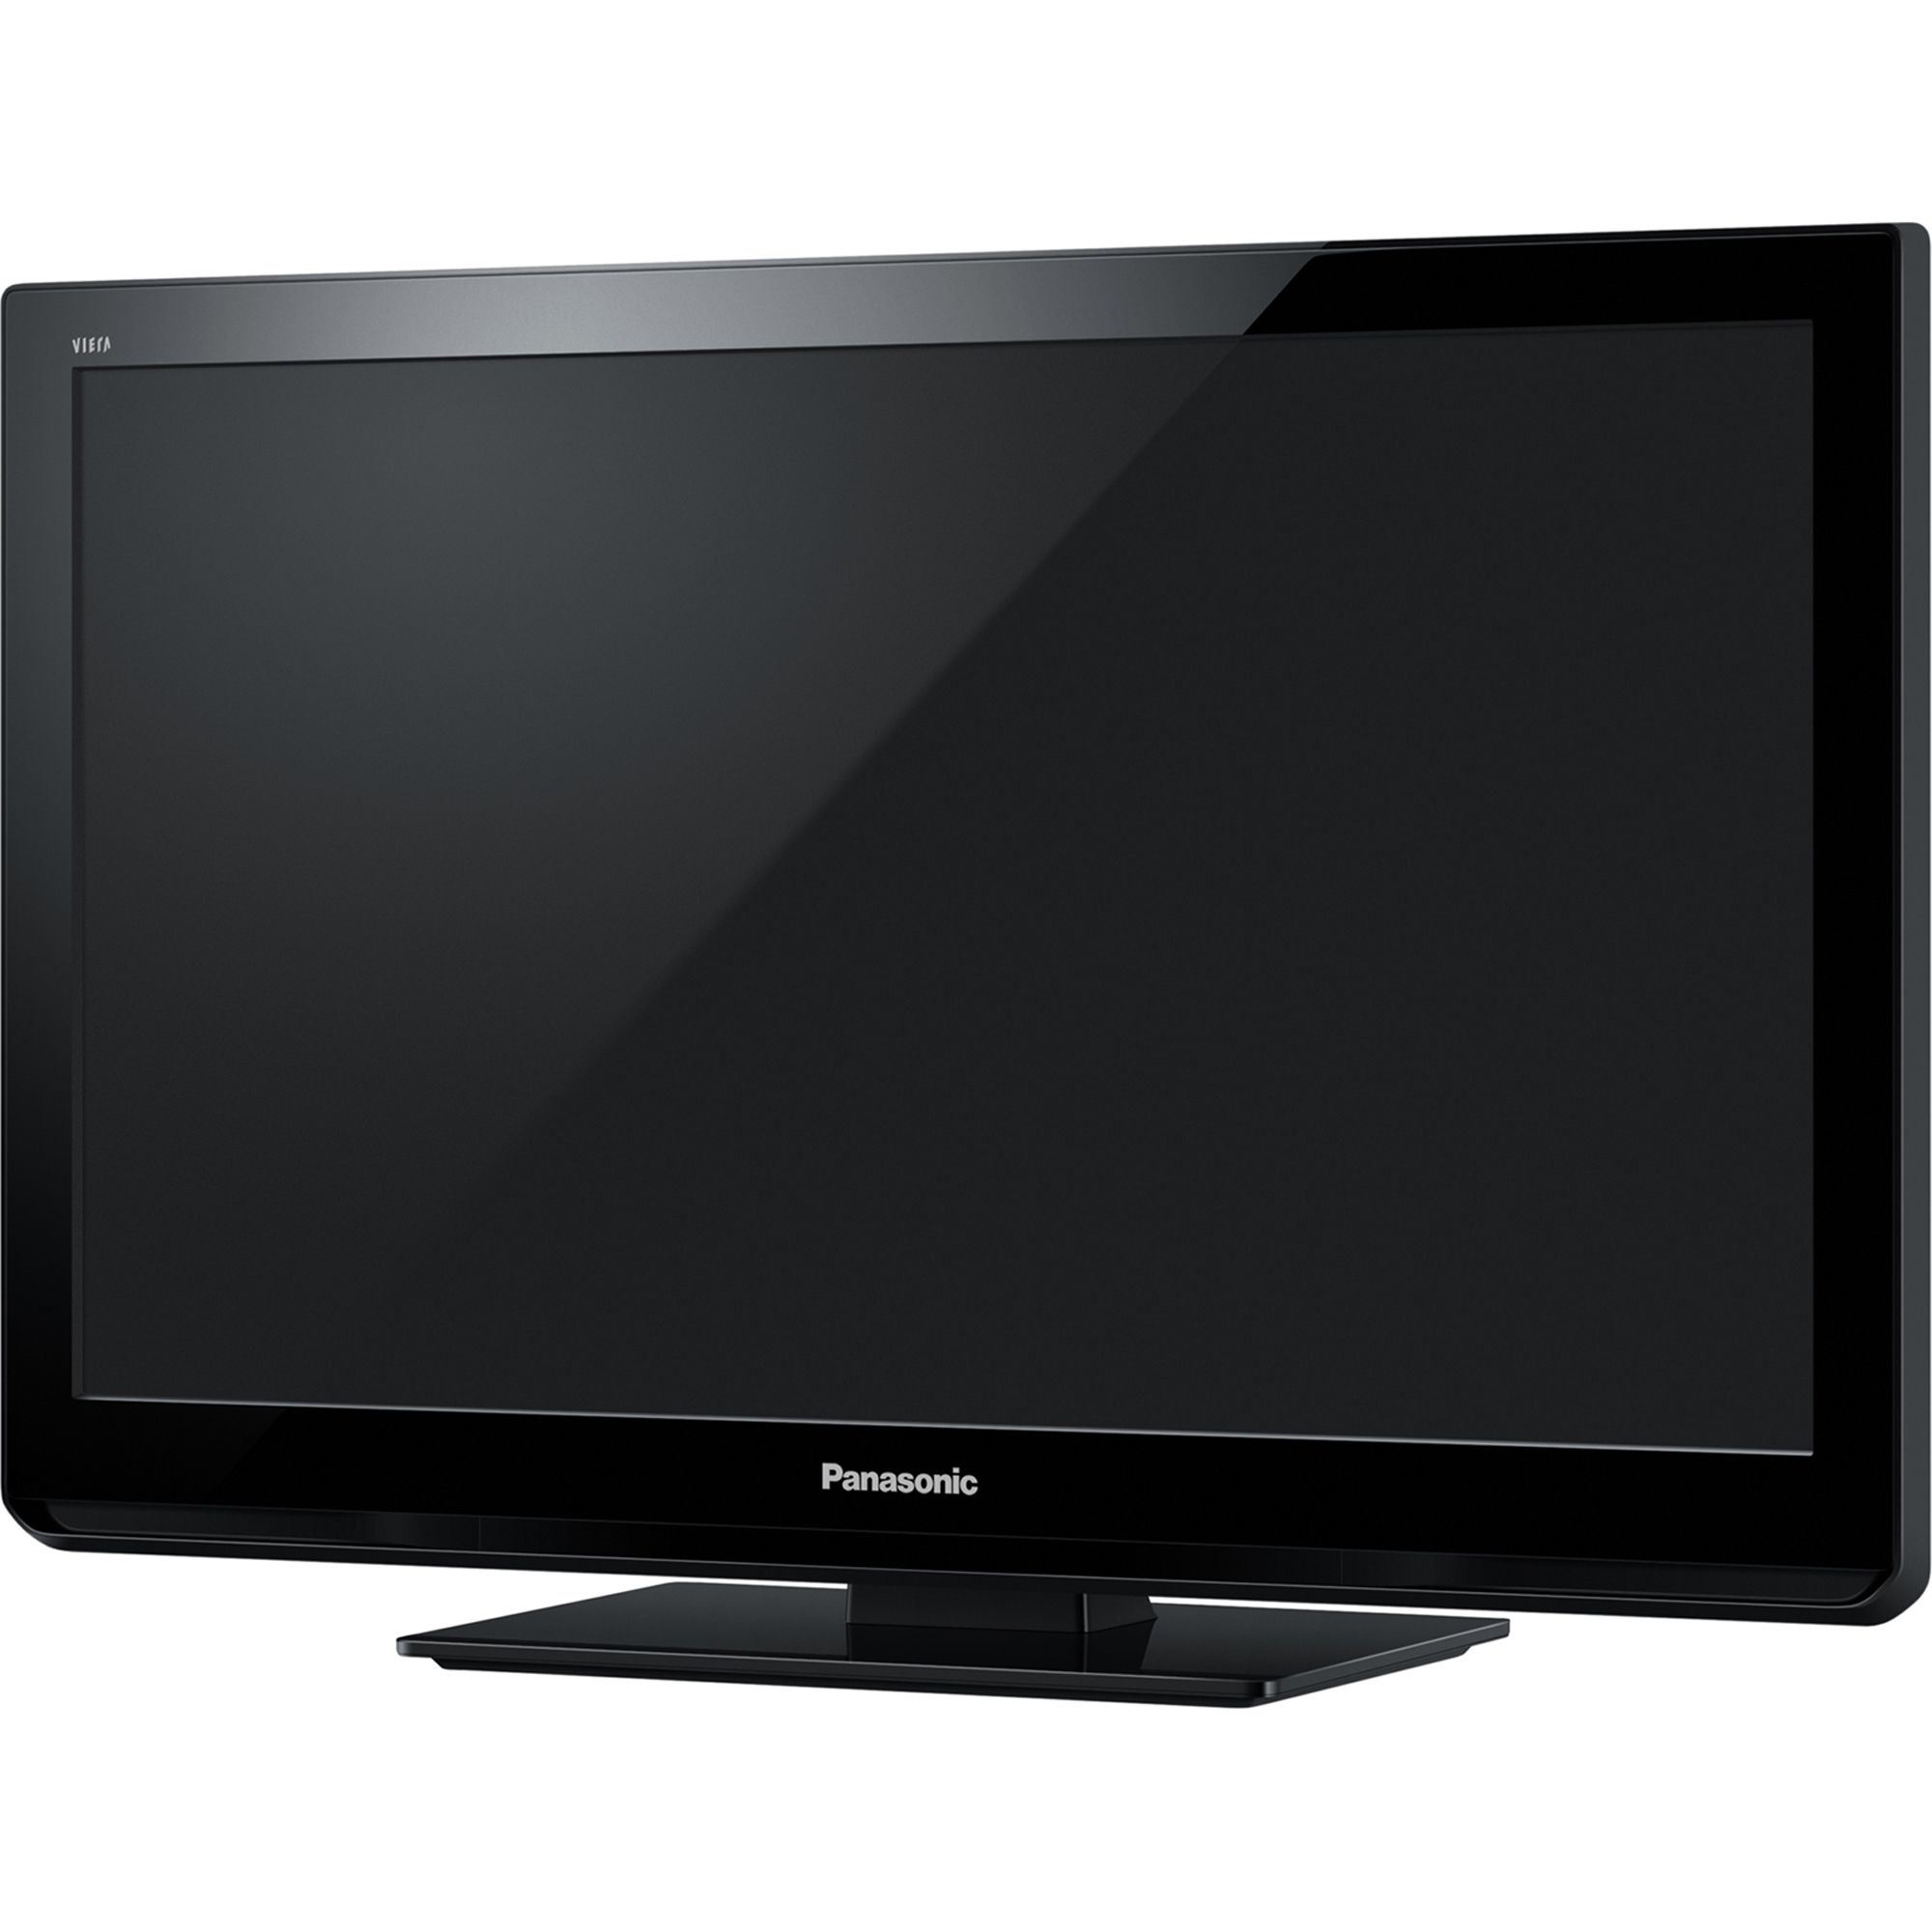 "Panasonic (Refurbished) 32"" Class Viera C3 Series LCD HDTV"